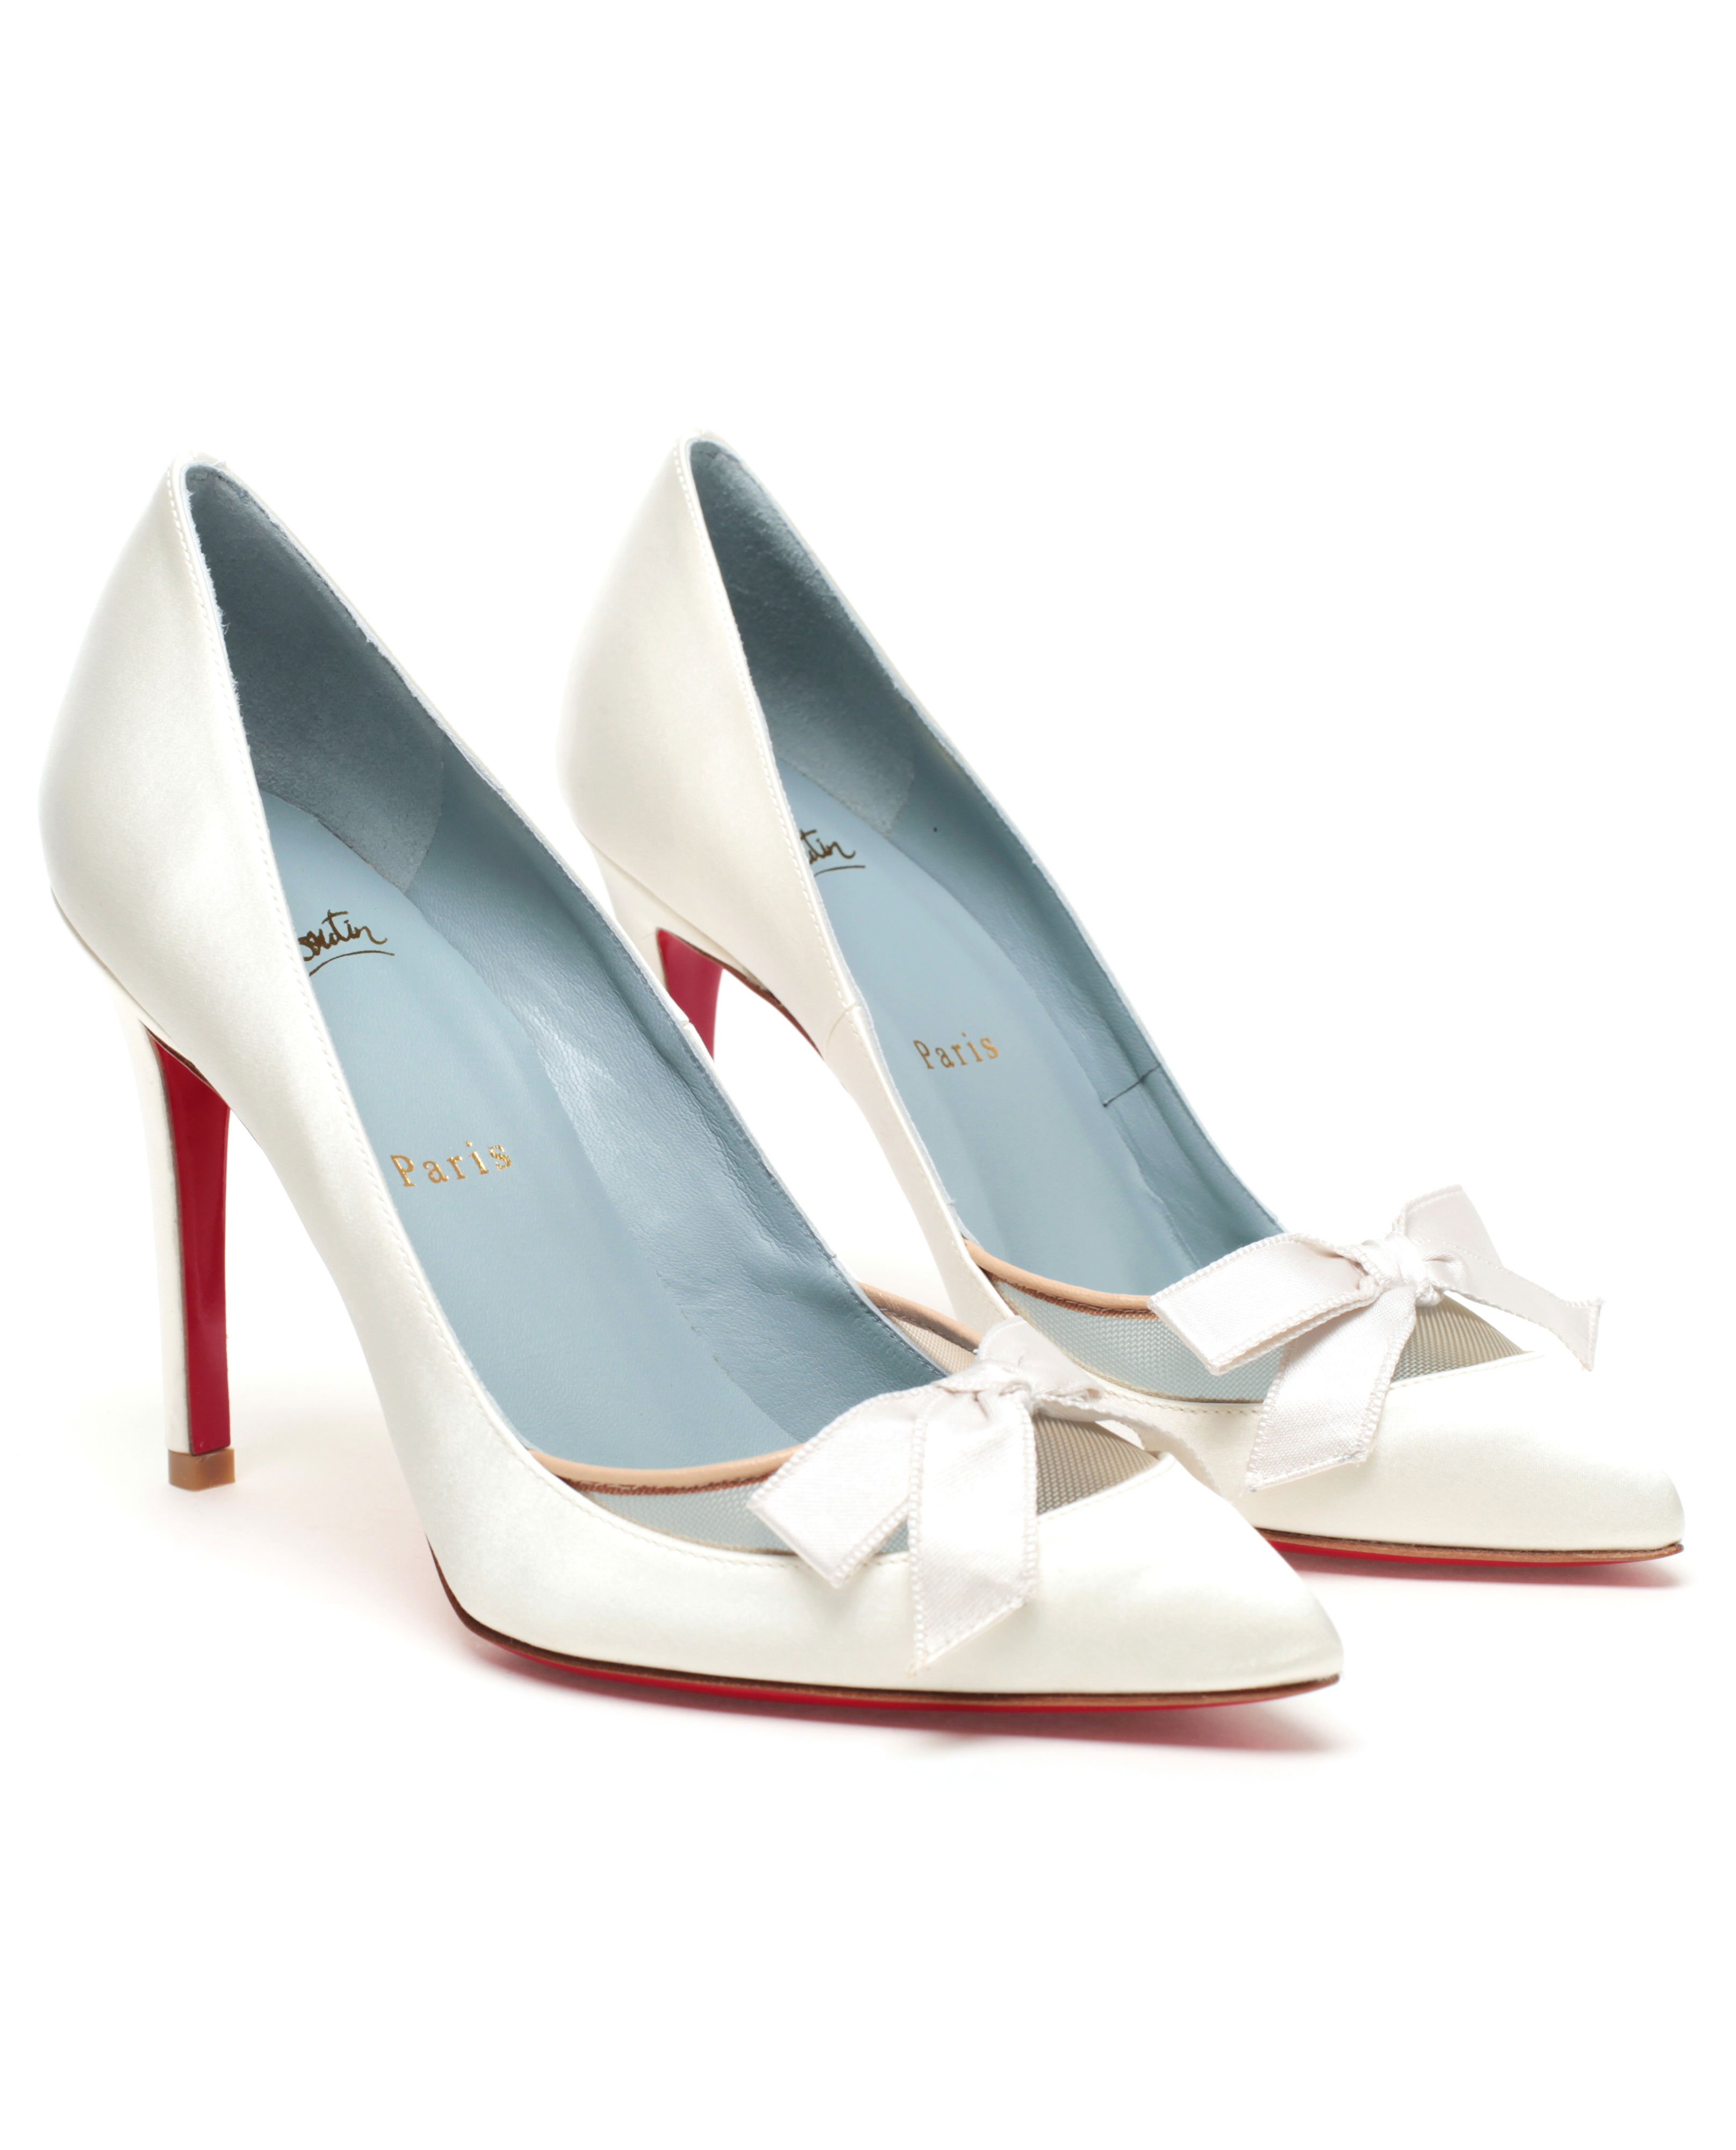 Christian Louboutin Love Me Bridal Shoes in White - Lyst